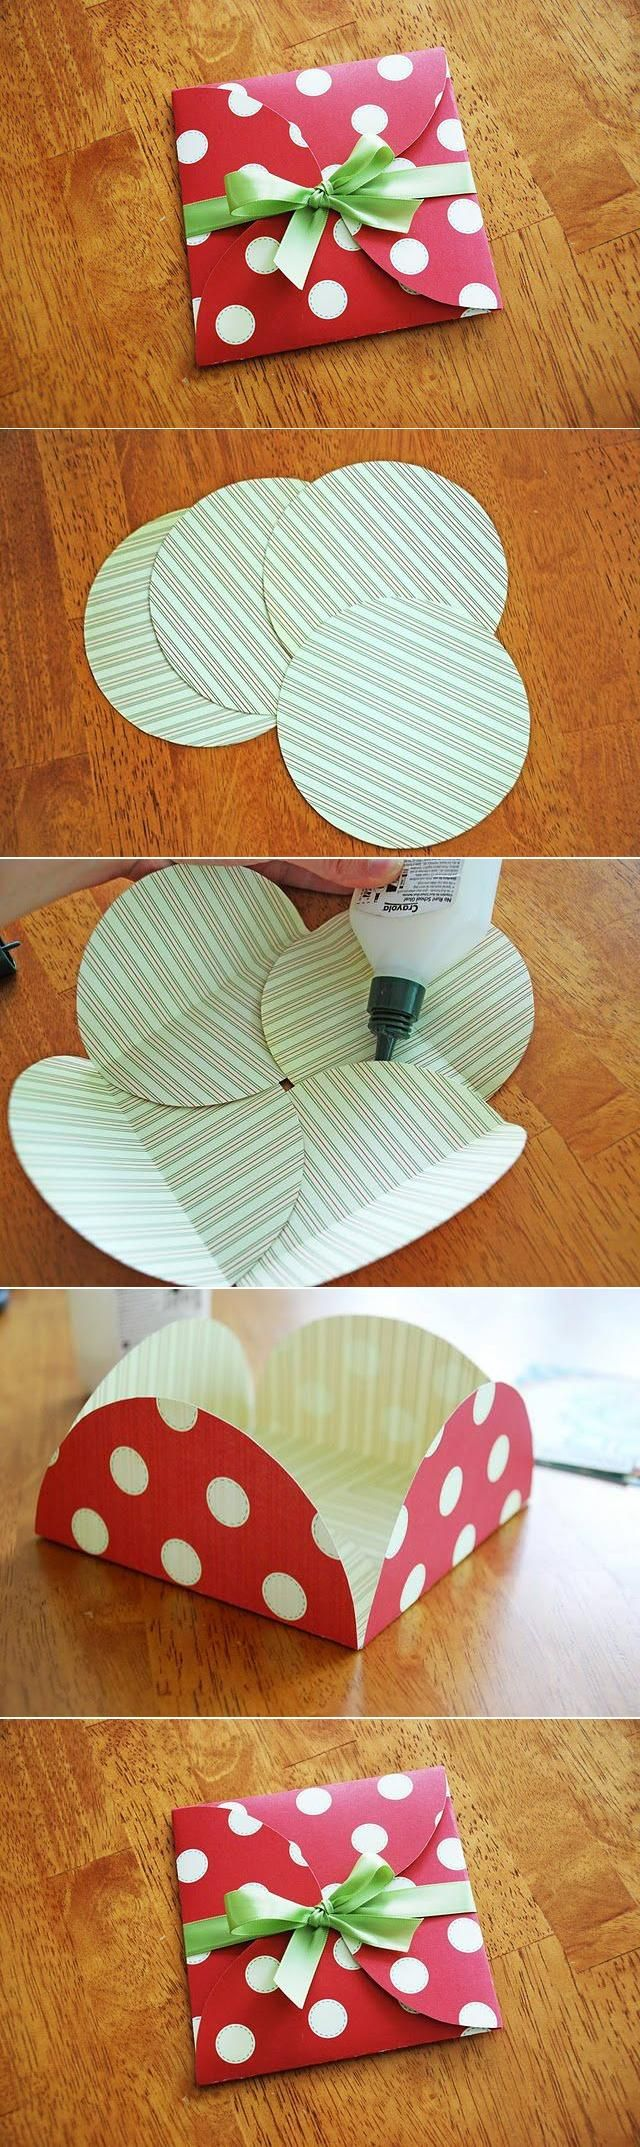 DIY Envelope